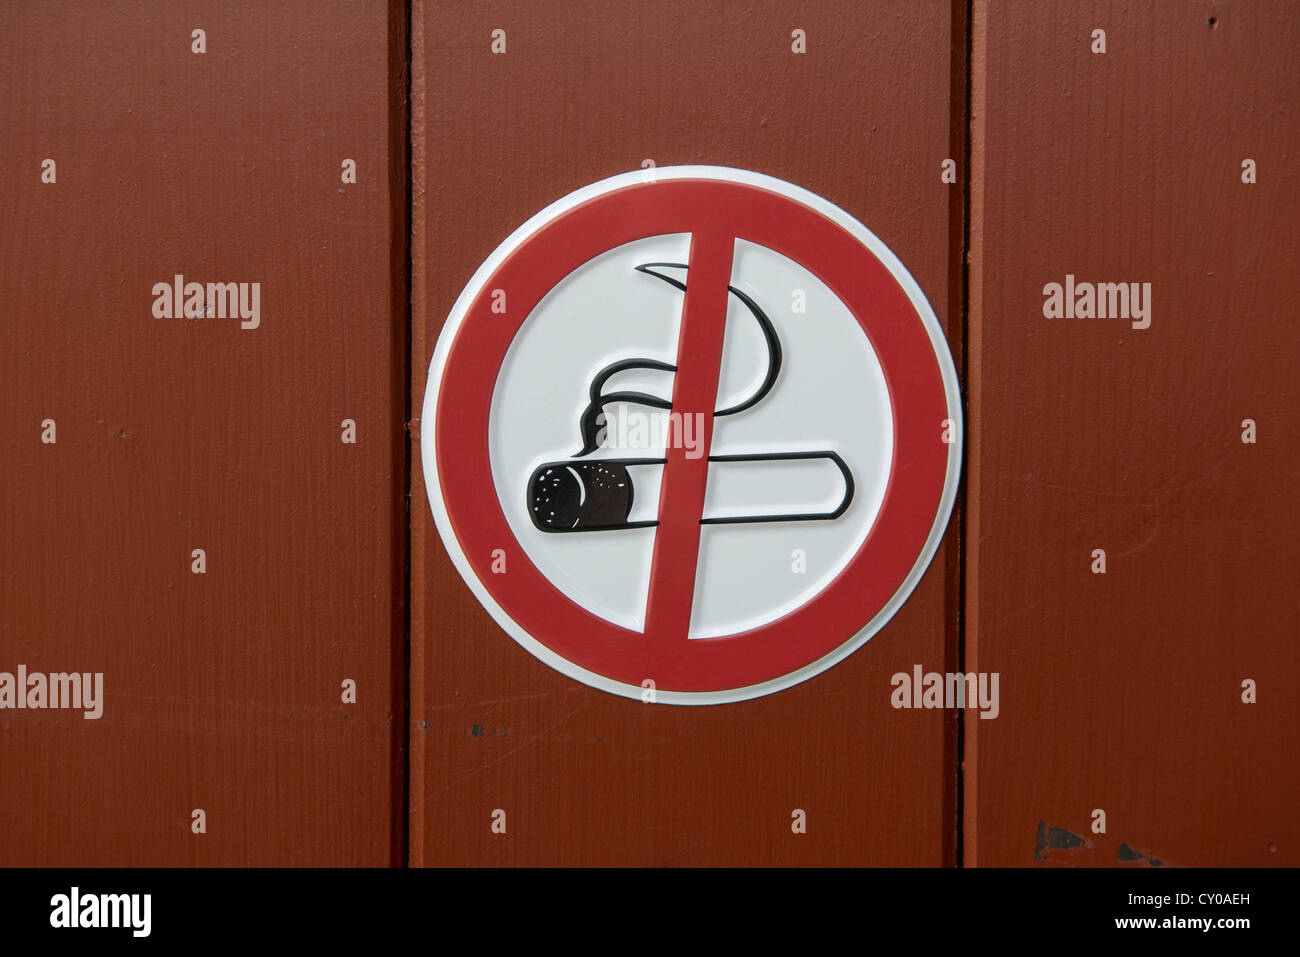 No smoking sign, on a wooden door - Stock Image